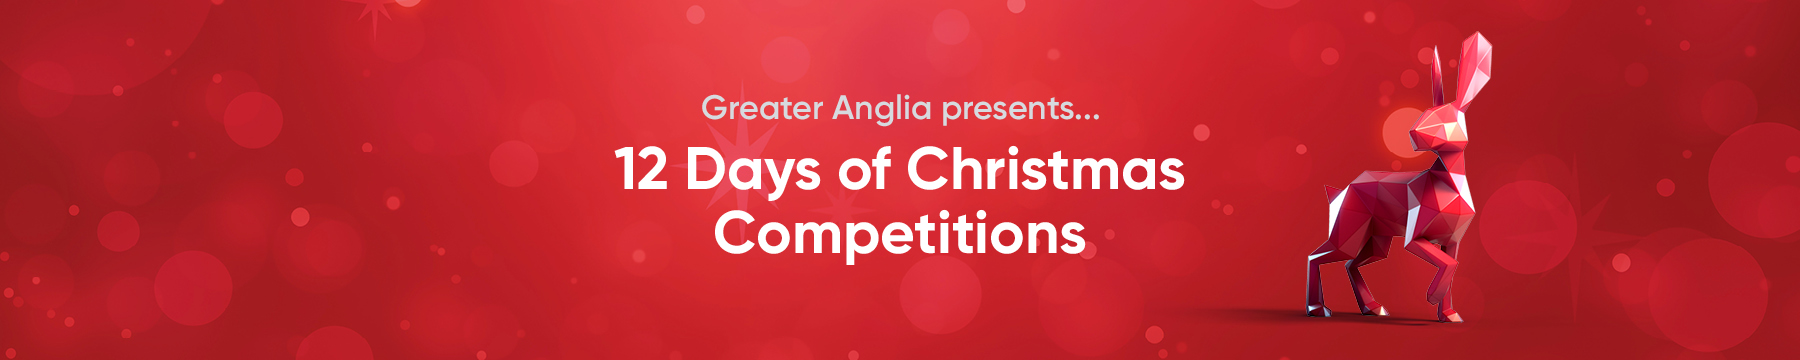 12 Days Of Christmas Competitions Greater Anglia